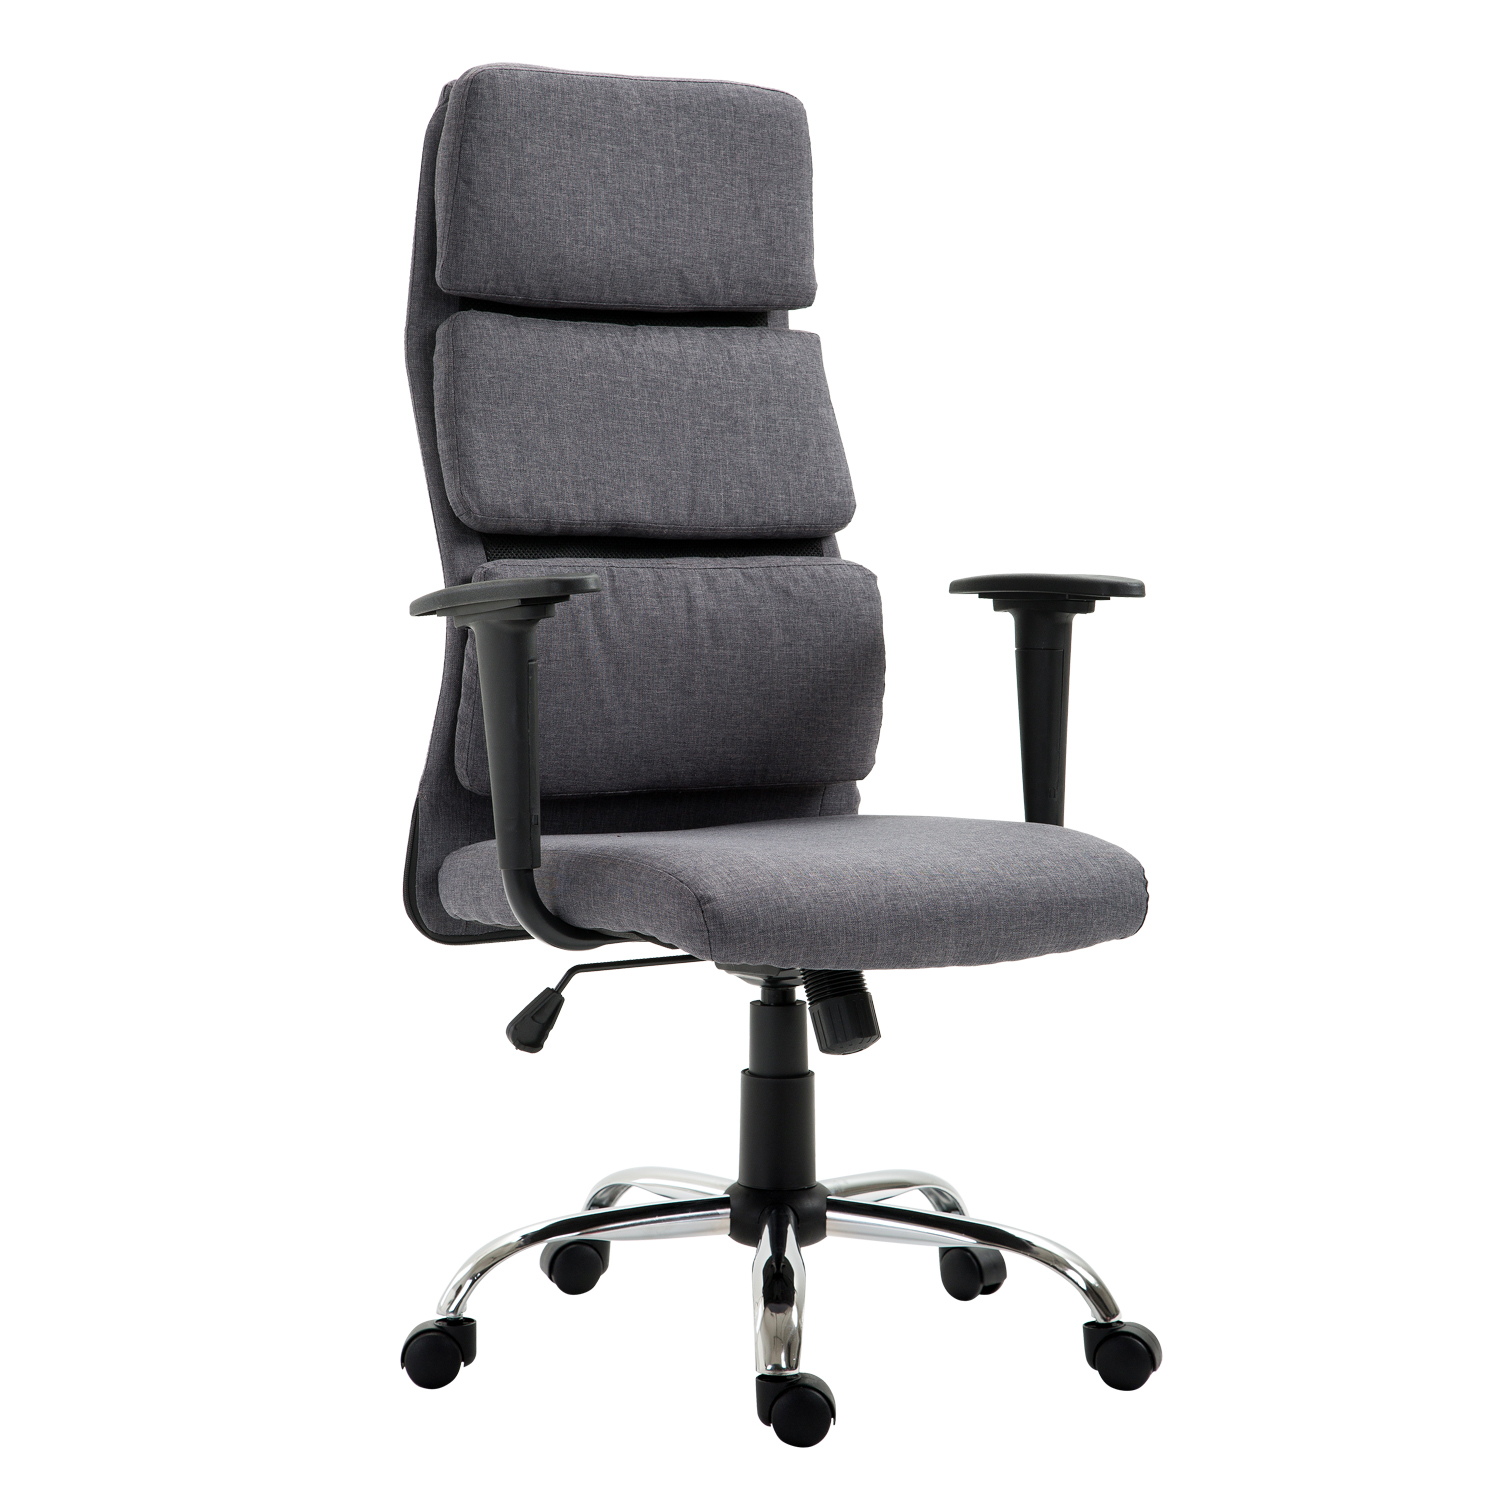 HOMCOM Ergonomic Office Chair Swivel Chair High Back Adjustable Fabric 50 × 56.5 × 117-127 Cm Gray